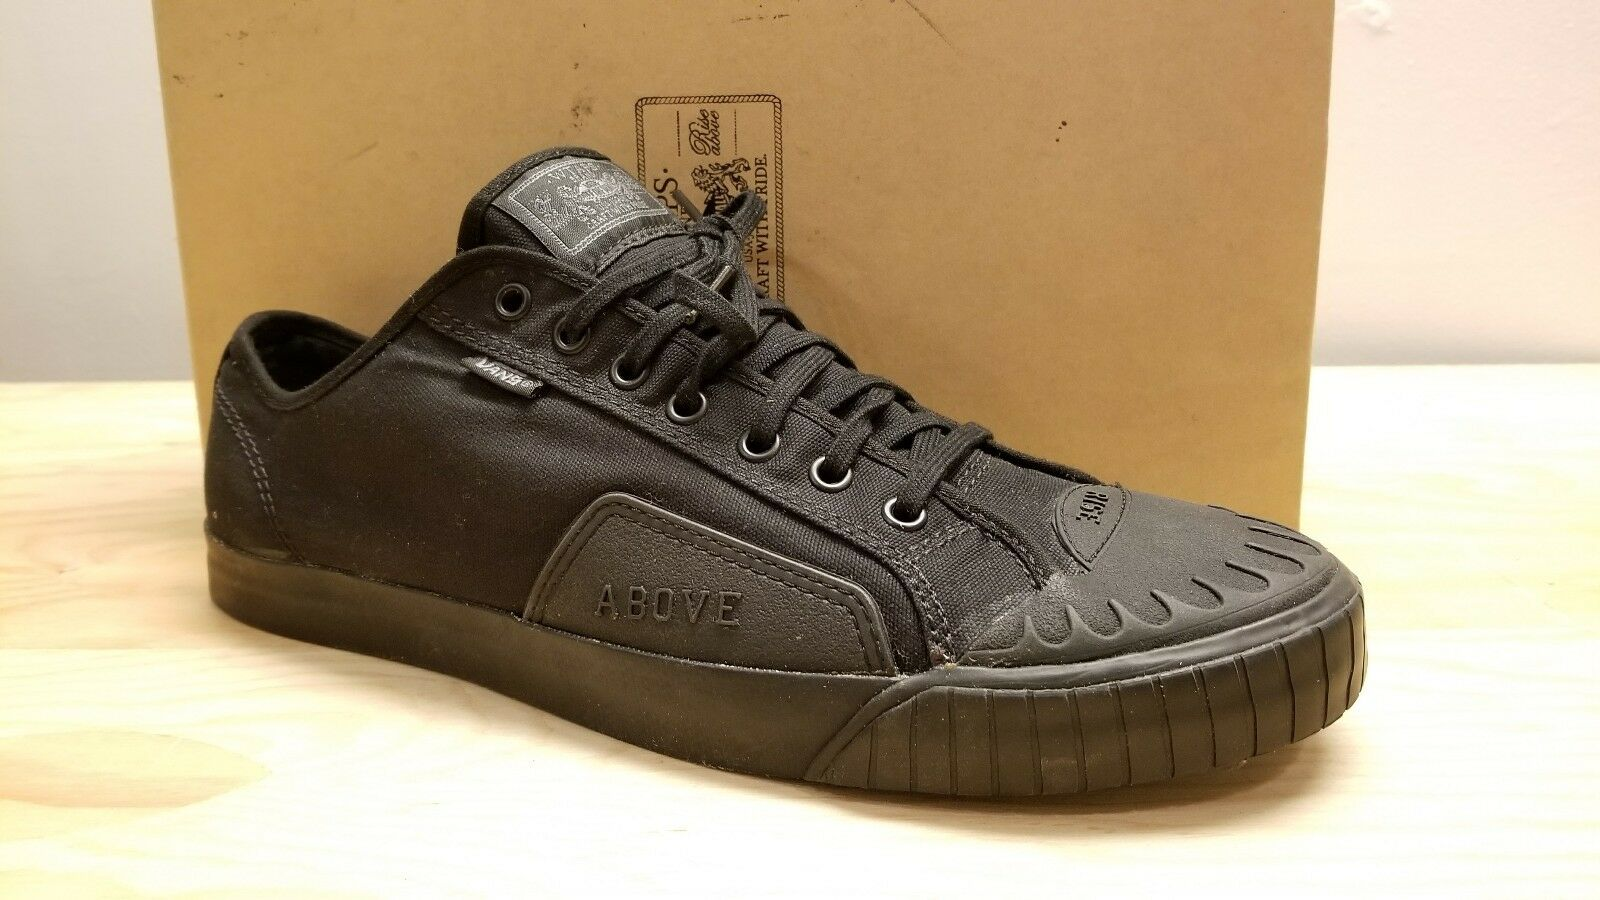 Vans Syndicate Syndicate Syndicate Greaserz WTAPS sz. 11.5 New w-taps 0153e9